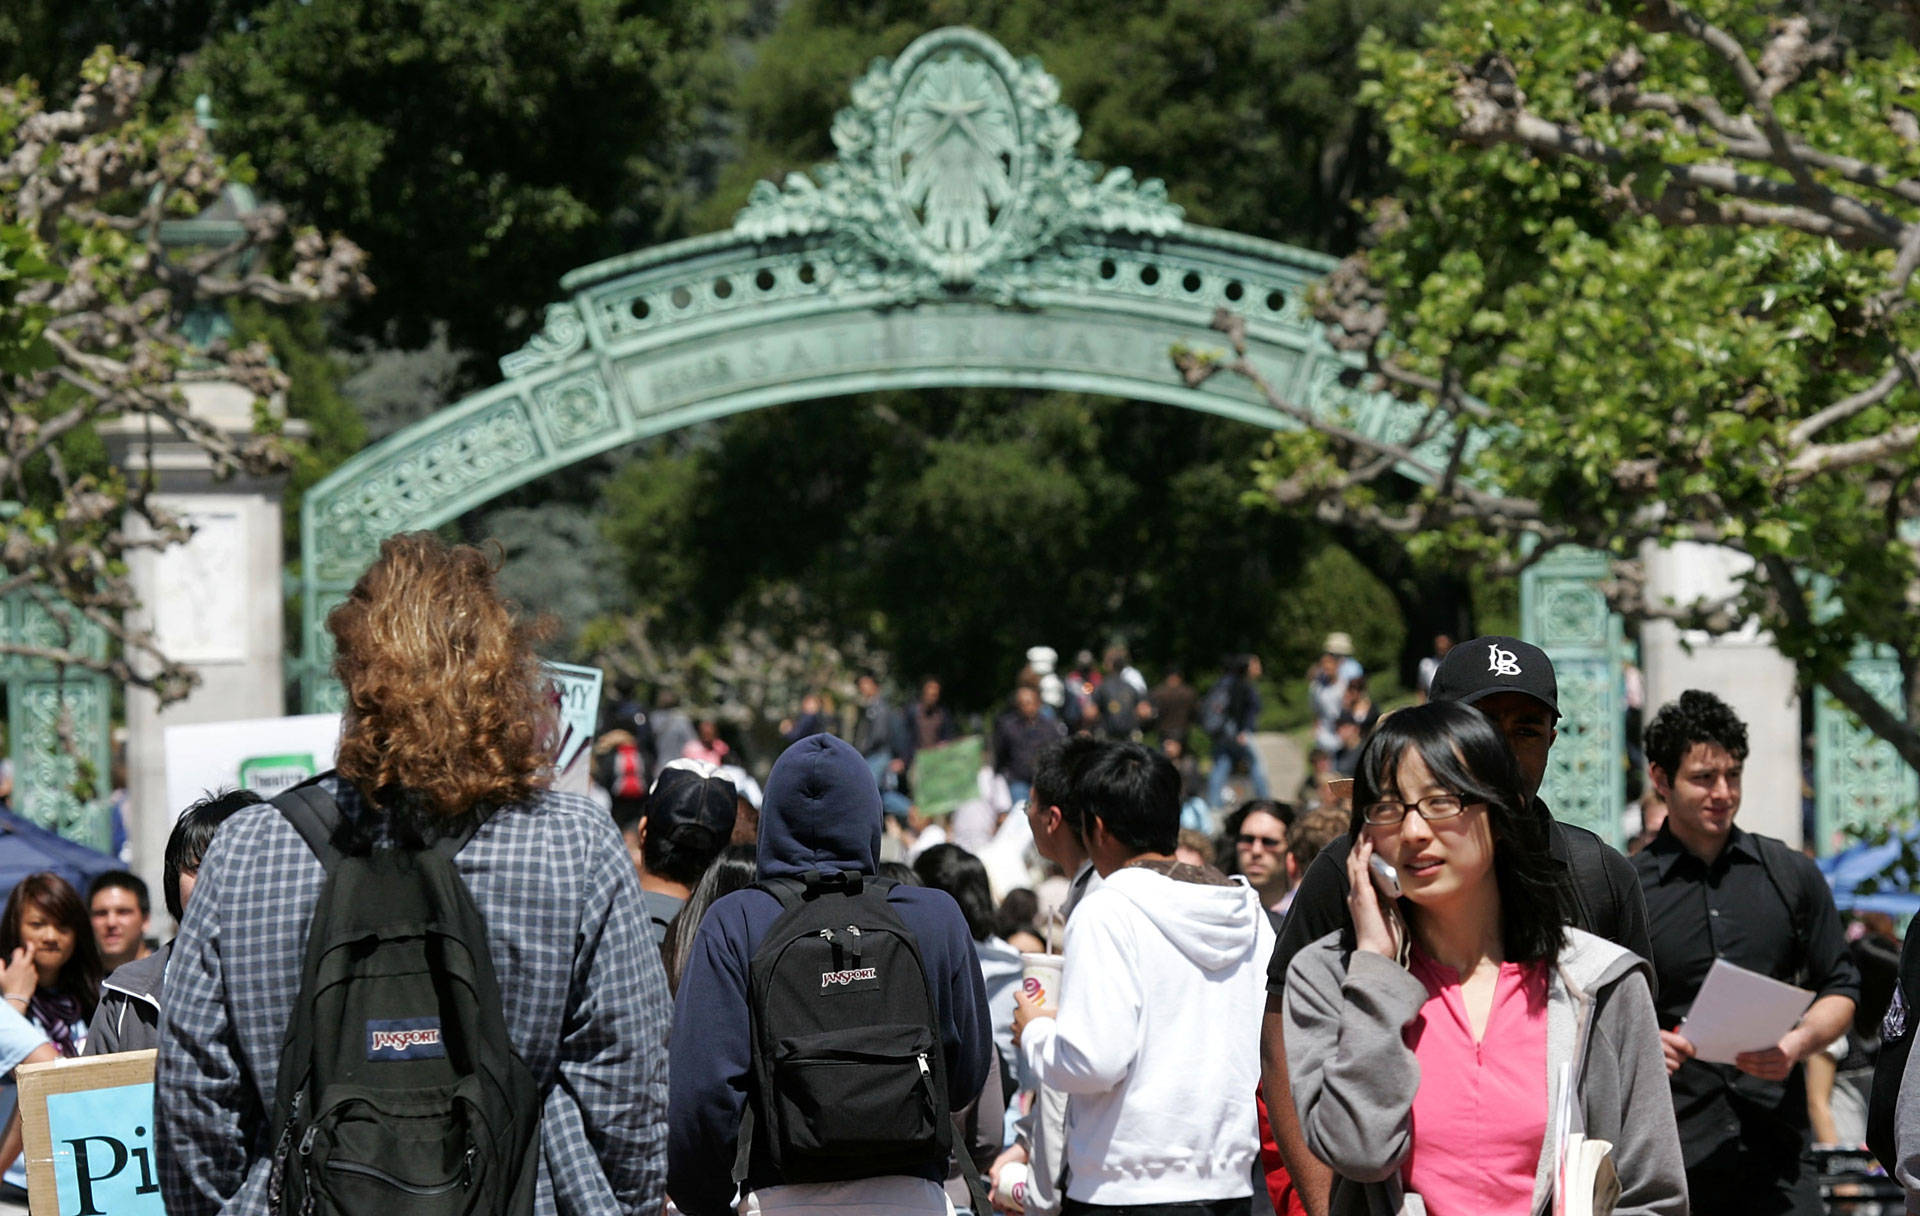 Students walk through Sather Gate at UC Berkeley, one of the nation's most selective public universities. Justin Sullivan/Getty Images